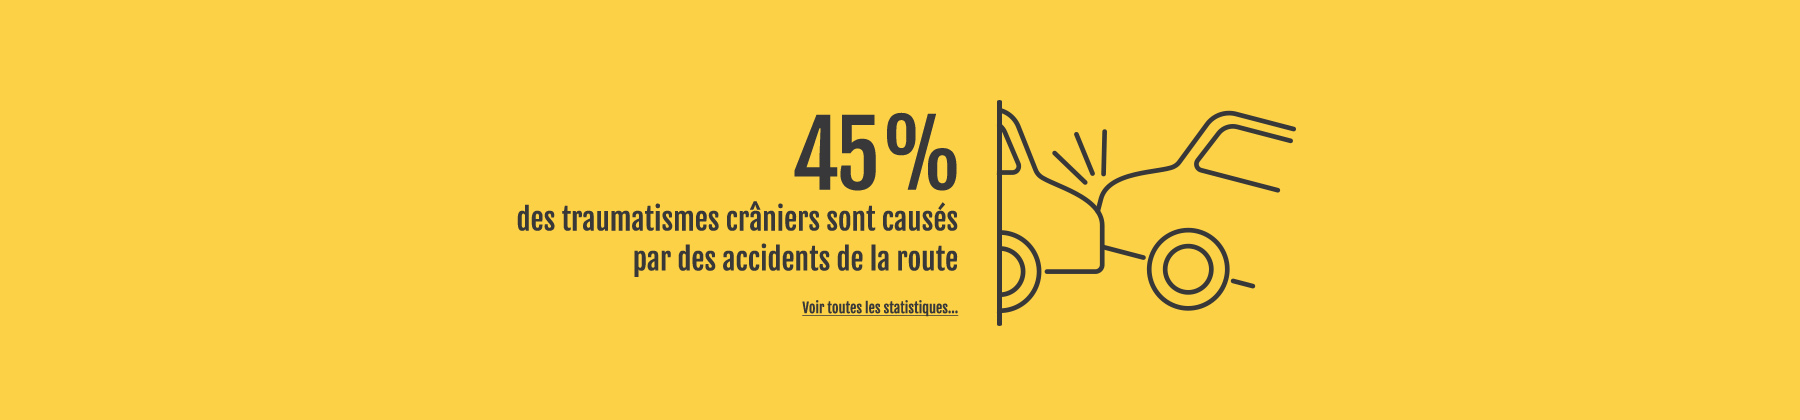 Statistiques accidents